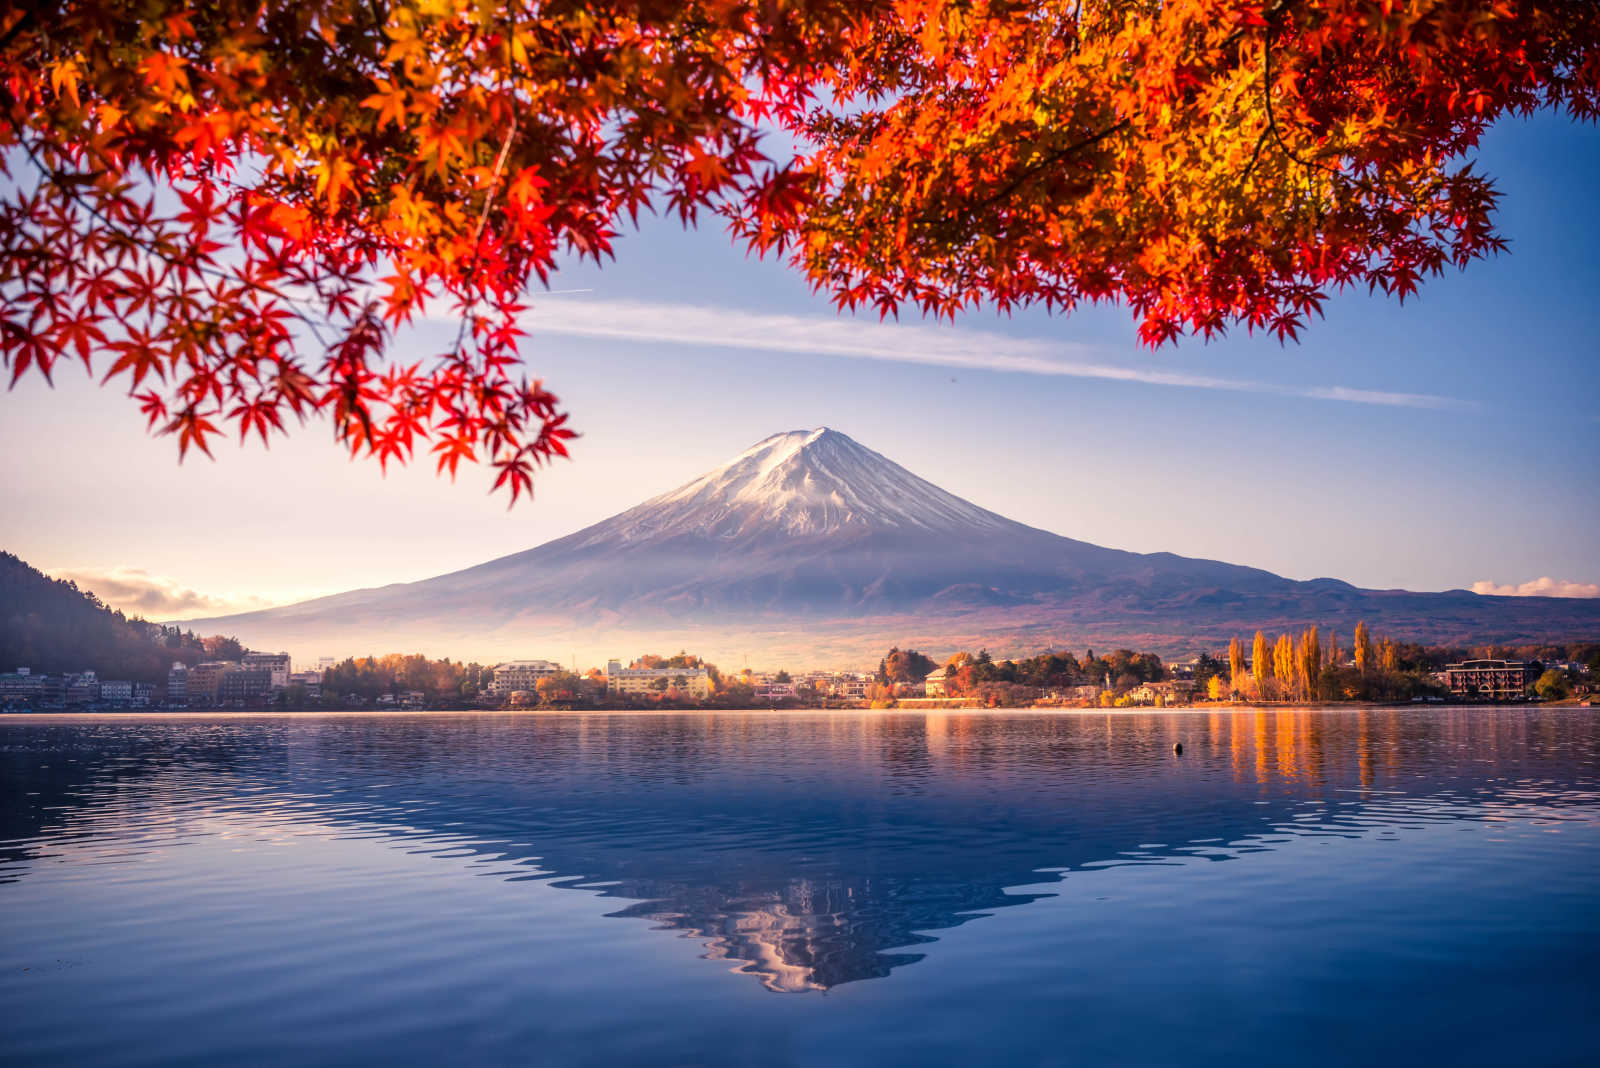 Zicht op de Herfstberg Fuji in Japan, China